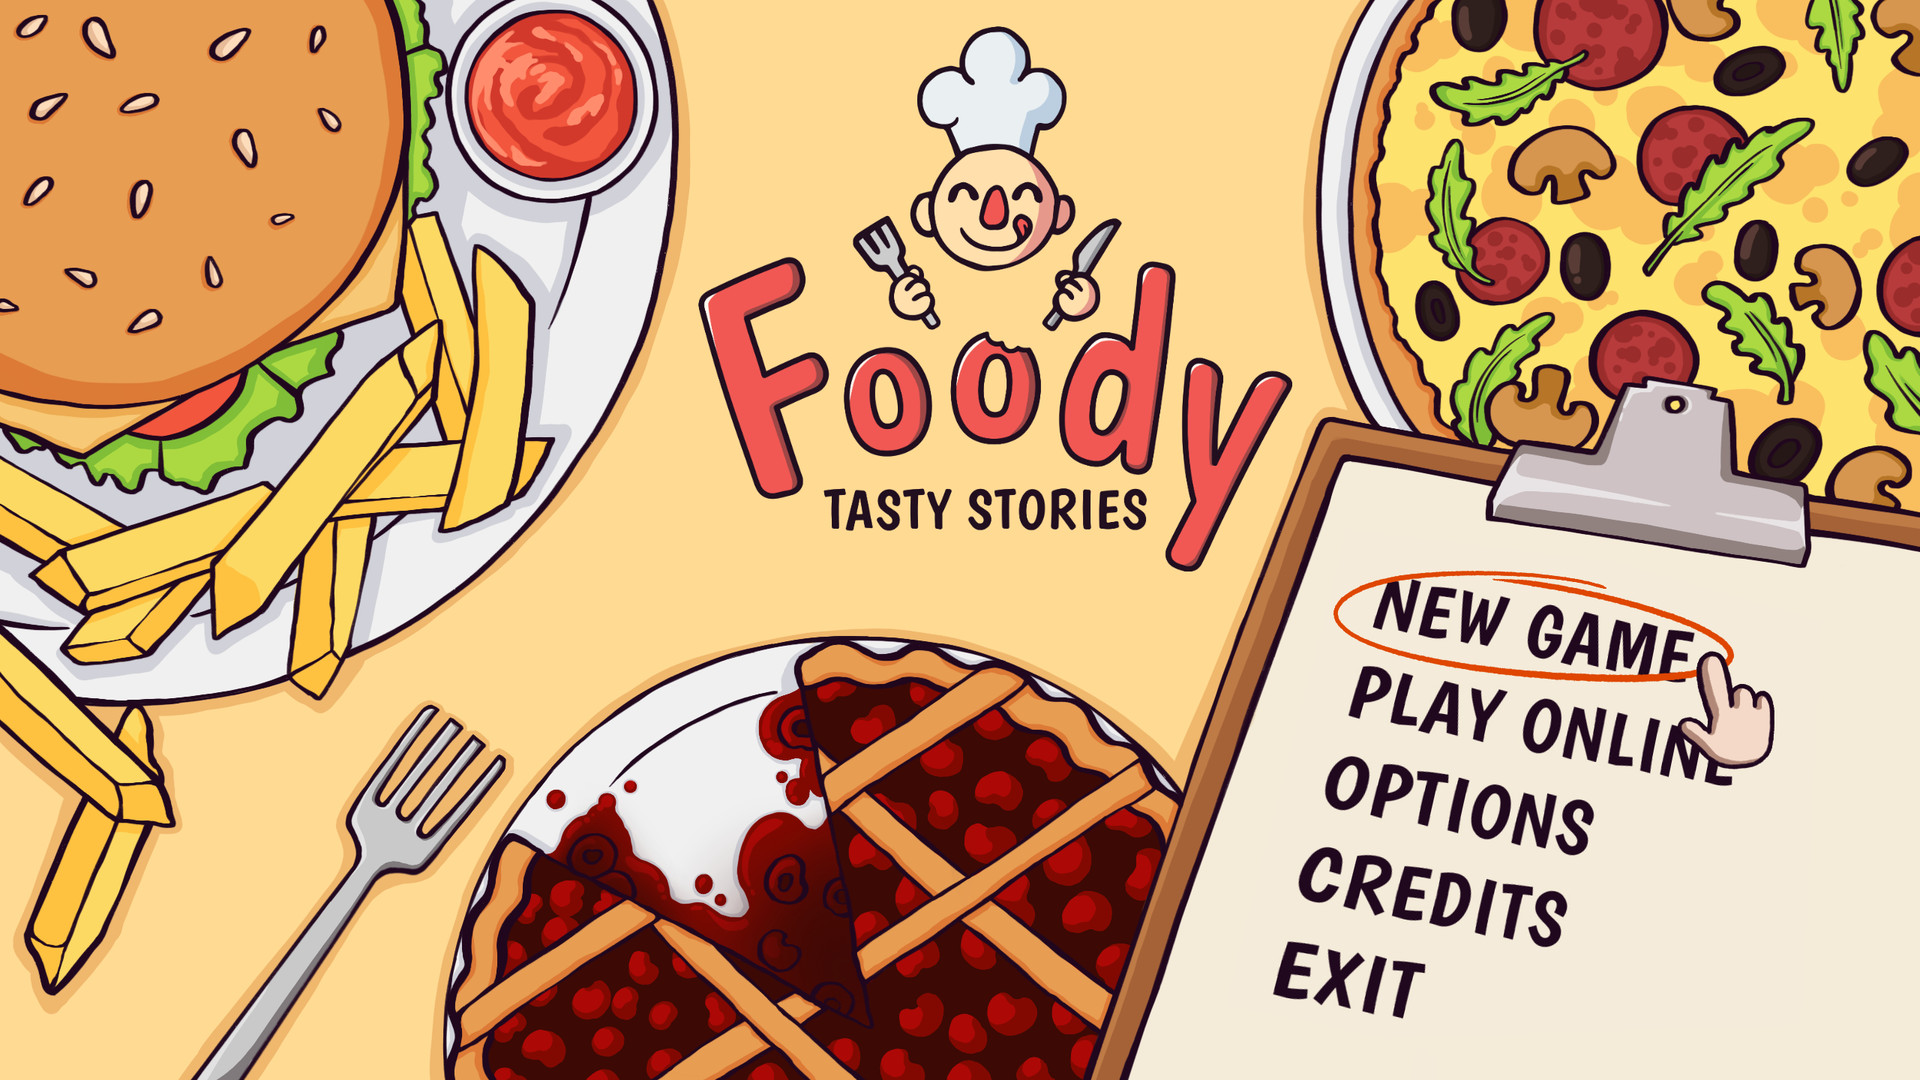 Cuisine Gameplay Joyce Rave Graduation Project Foody Tasty Stories Gameplay Ui